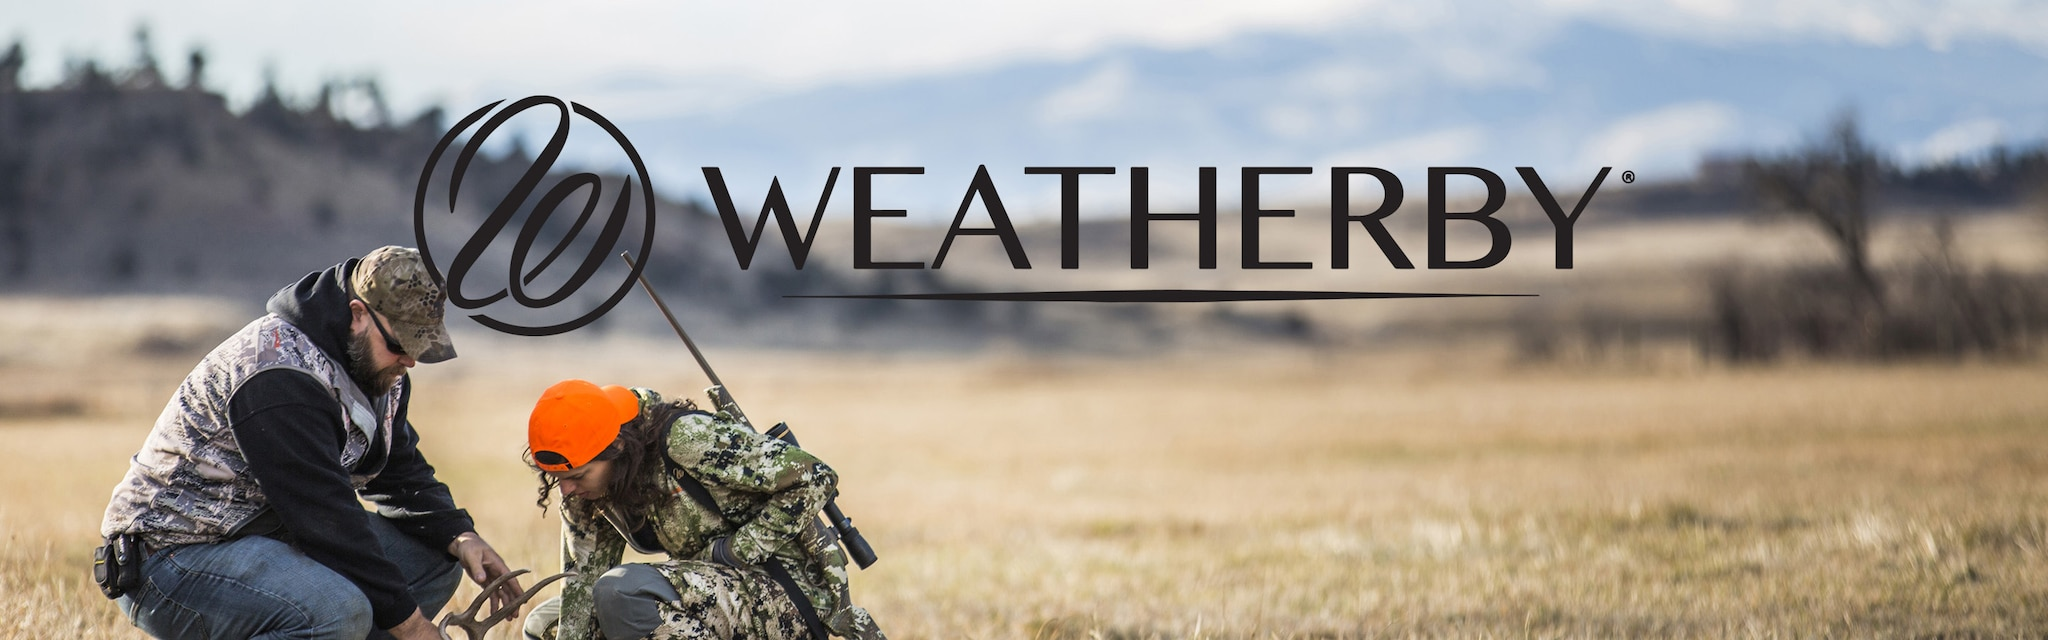 Weatherby Brand Page